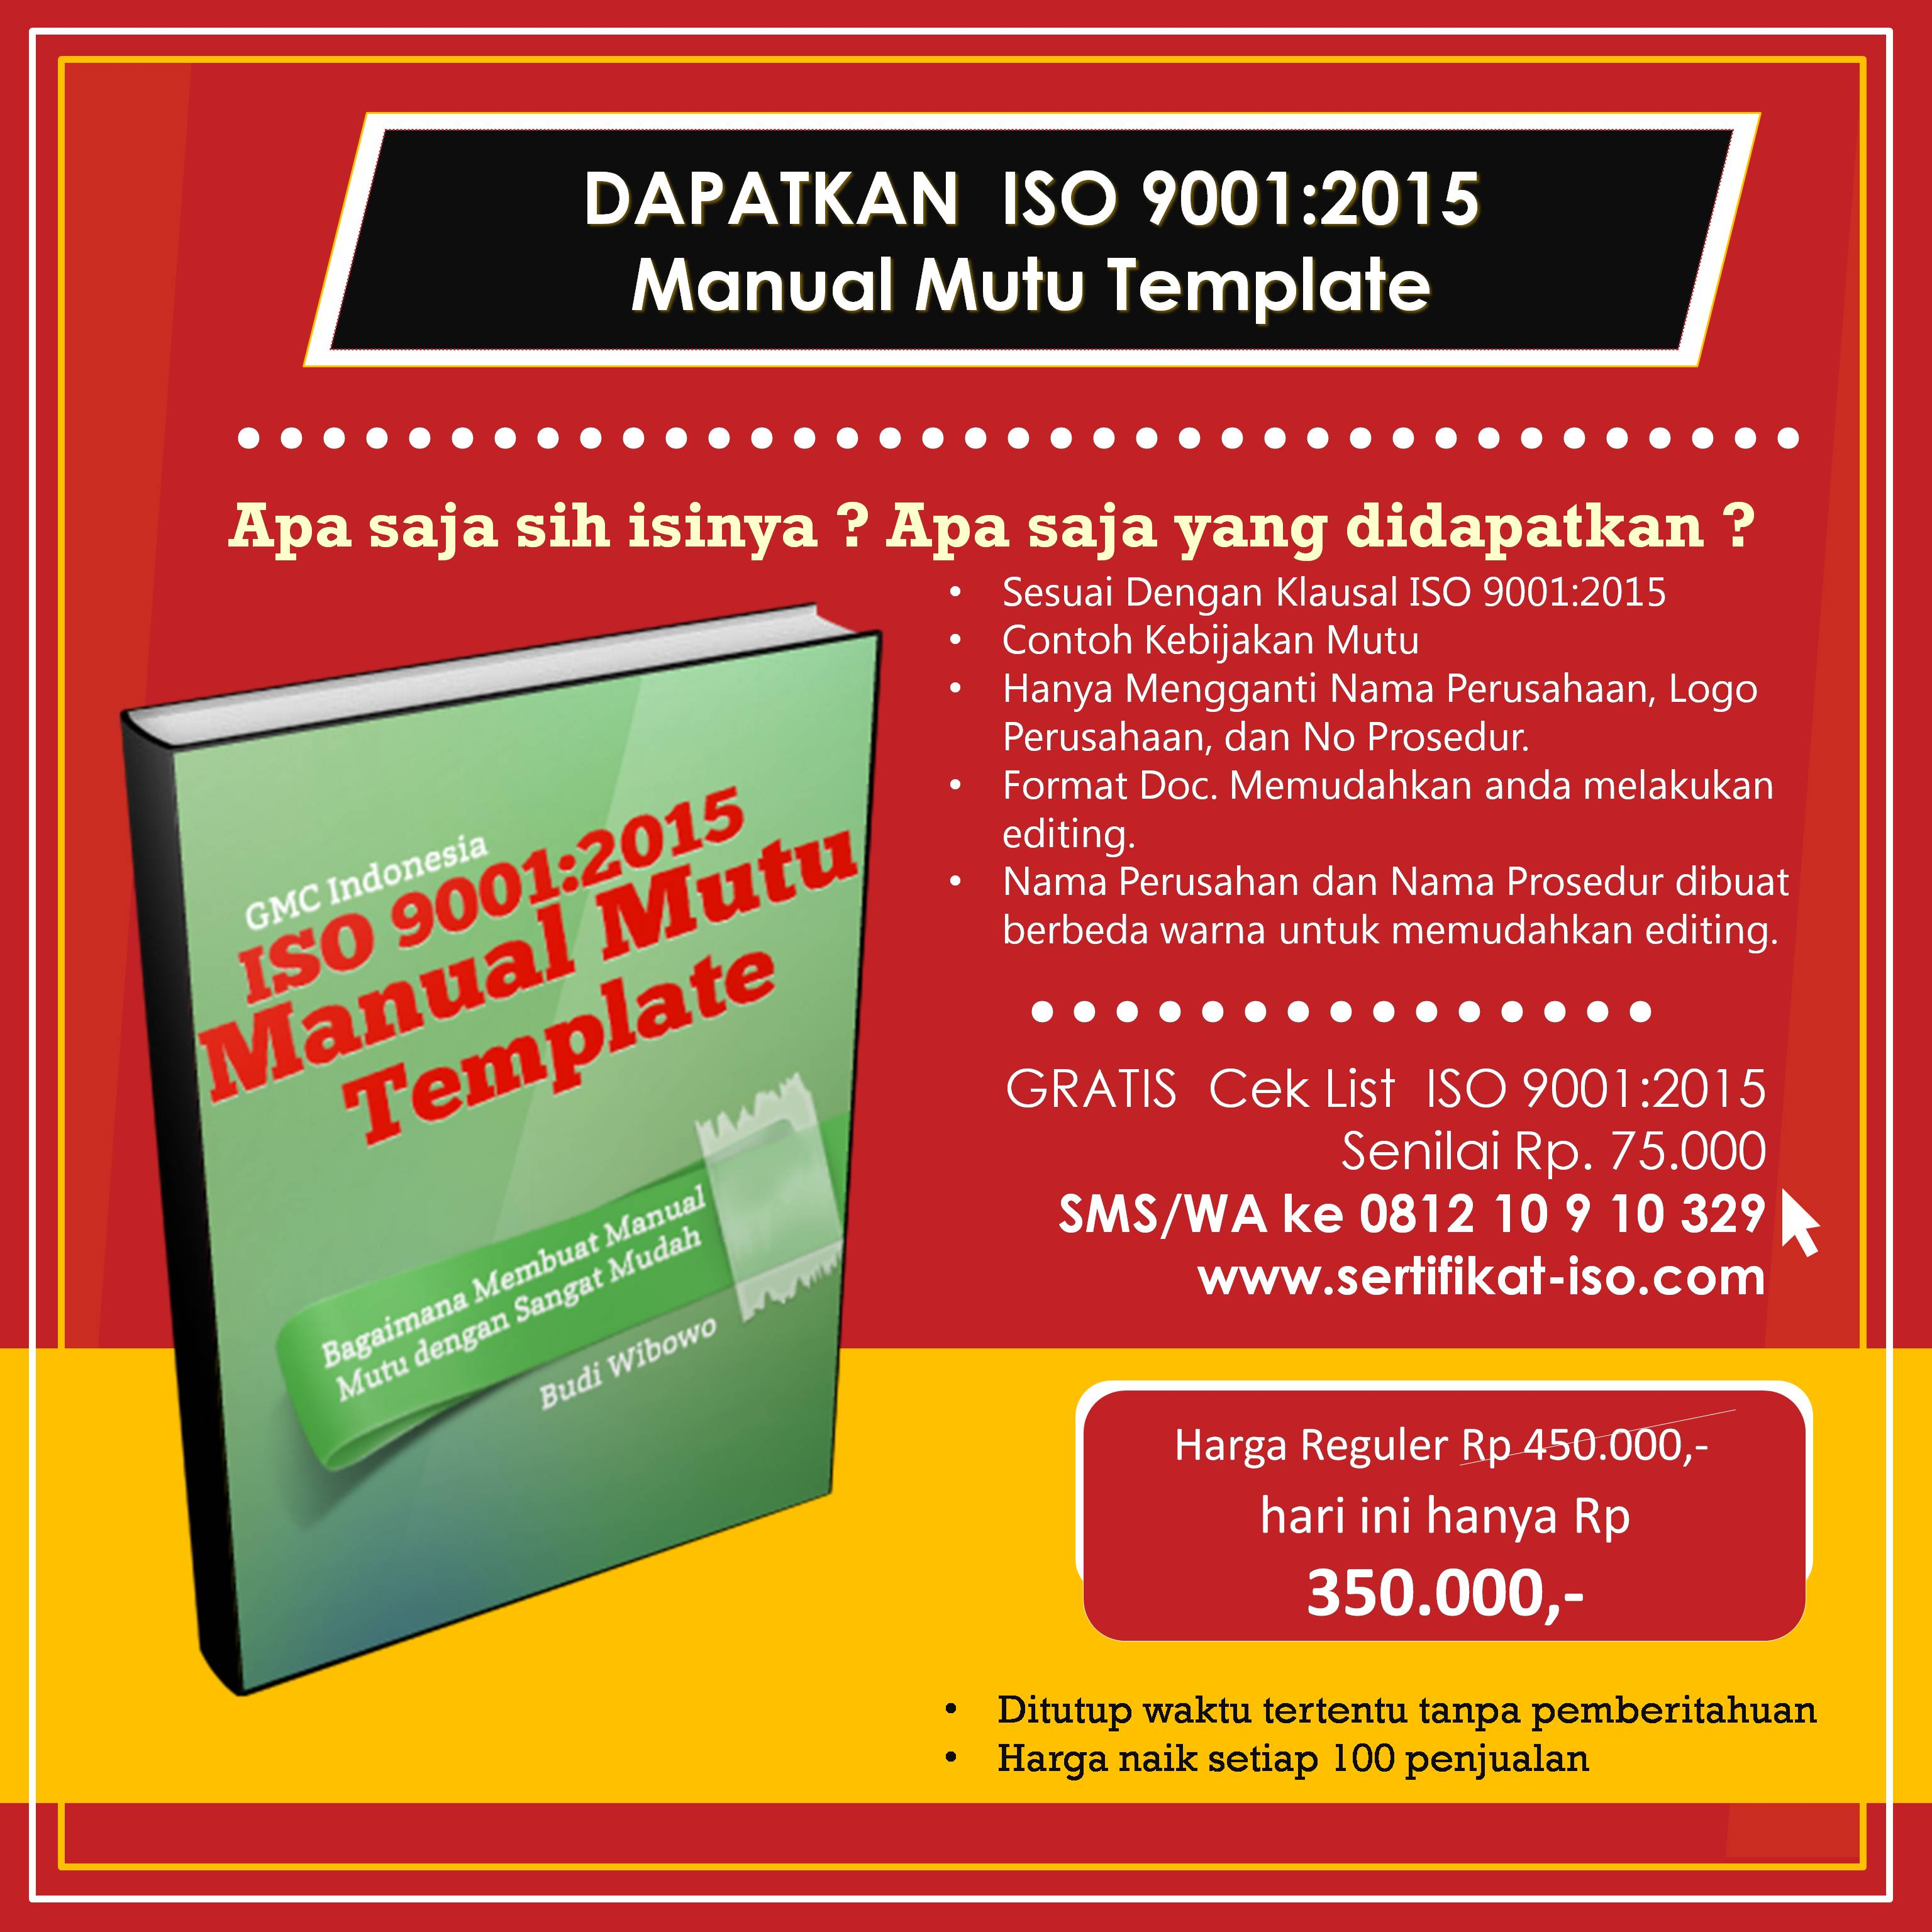 iklan manual mutu template square 1